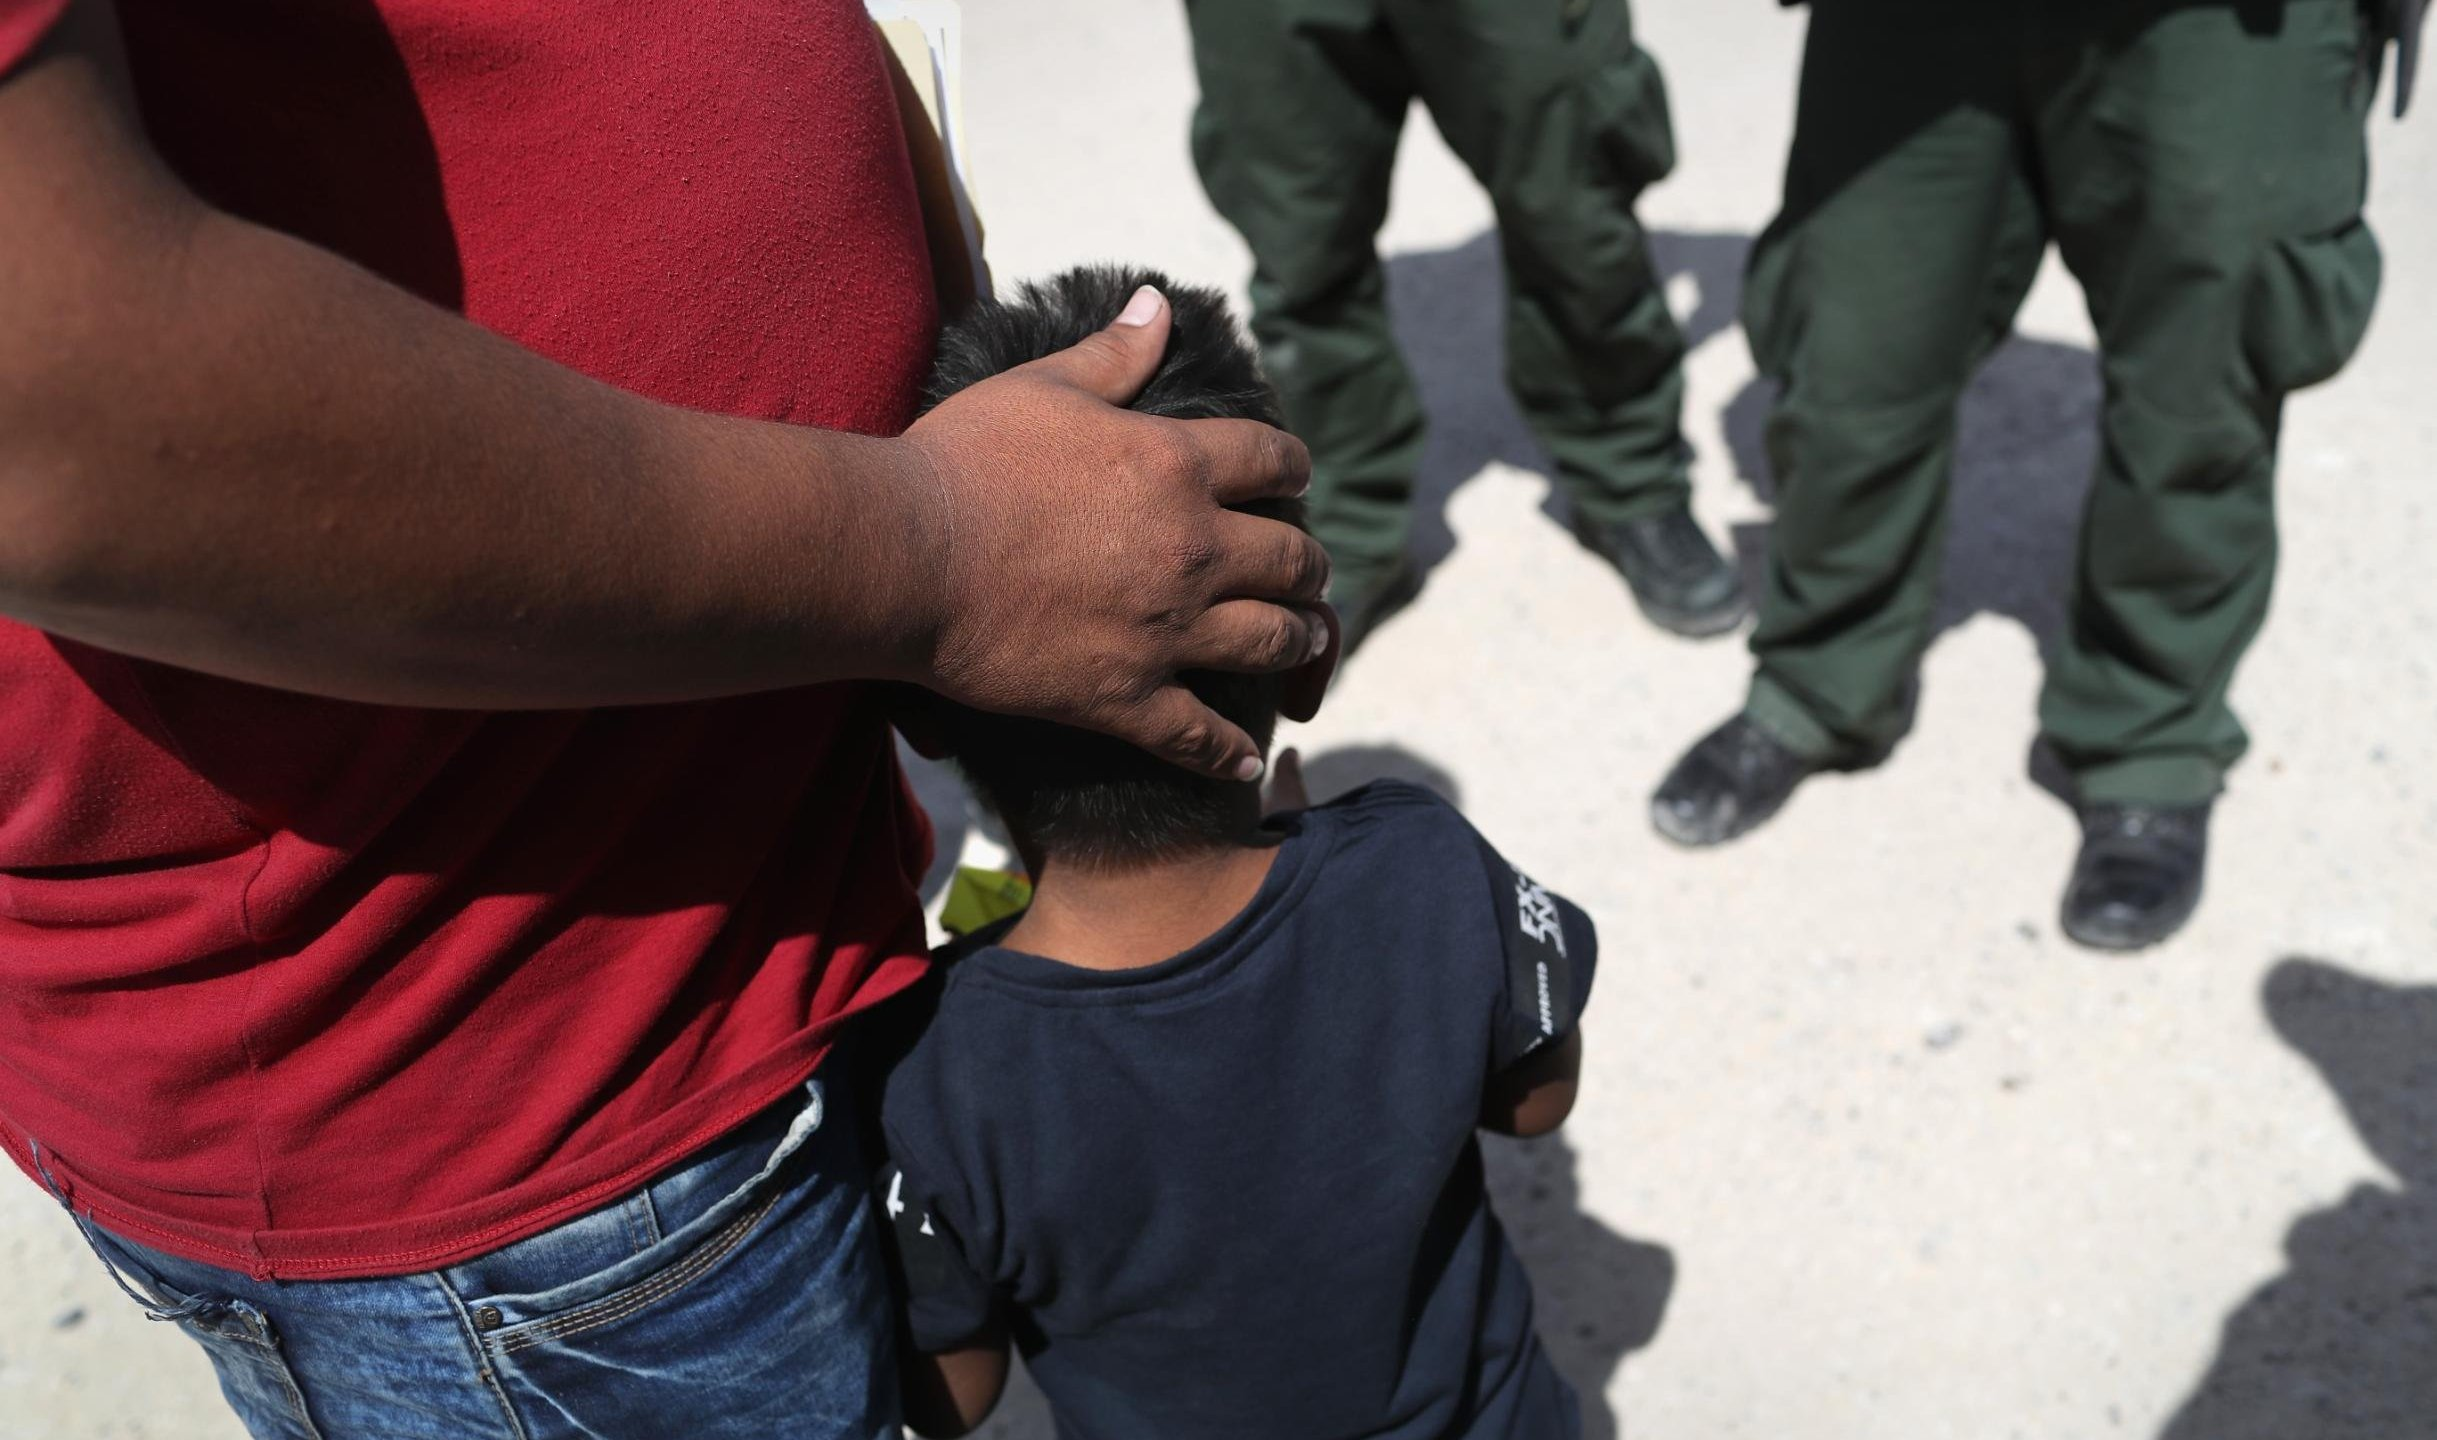 U.S. Border Patrol agents take a father and son from Honduras into custody near the U.S.-Mexico border on June 12, 2018 near Mission, Texas.(Credit: John Moore/Getty Images)